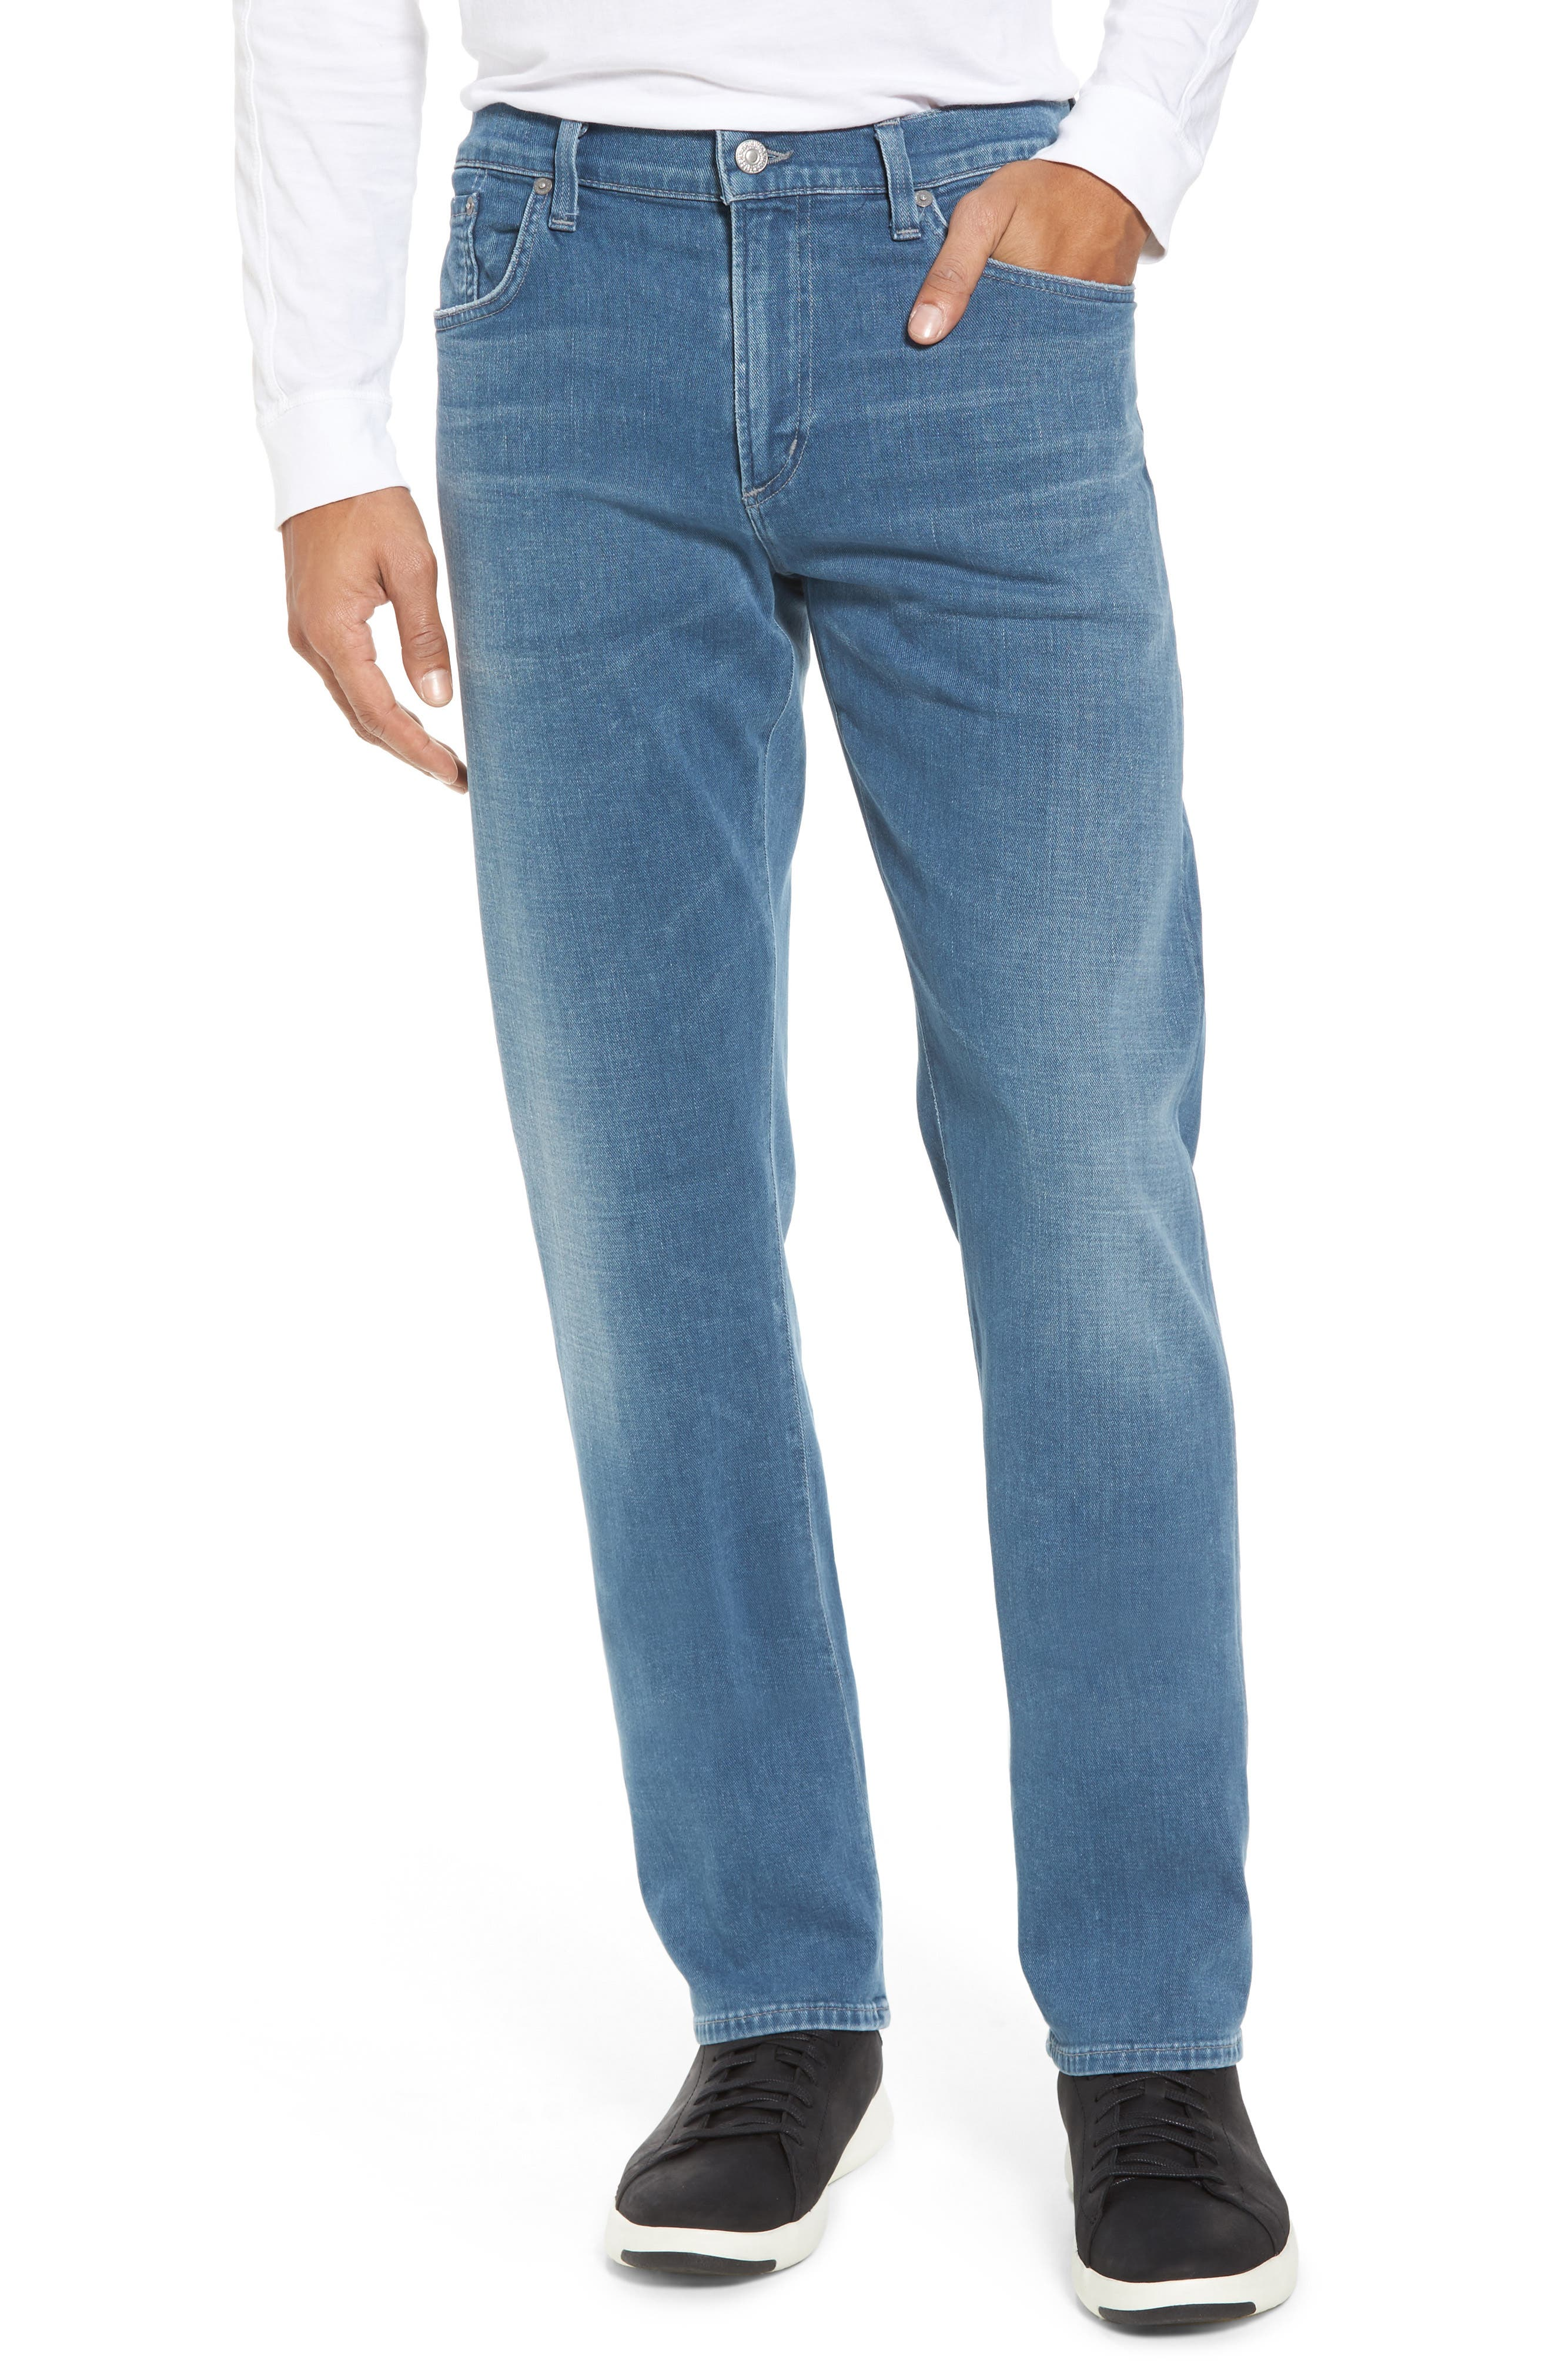 Alternate Image 1 Selected - Citizens of Humanity Core Slim Fit Jeans (Silverstone)